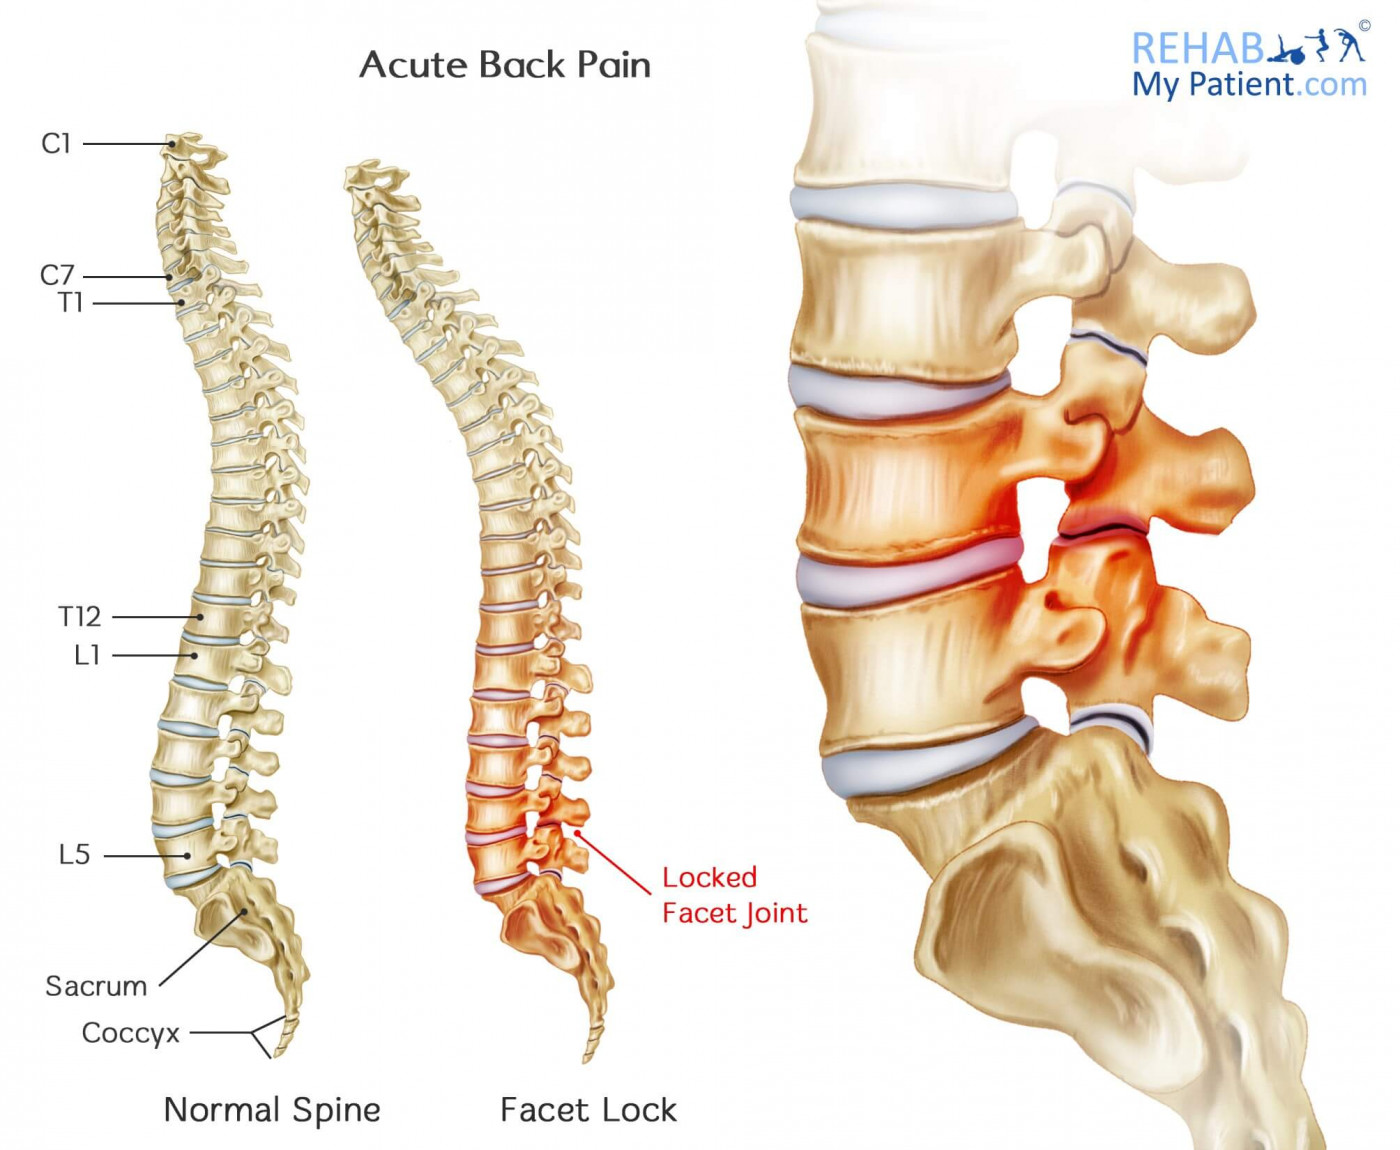 Acute Back Pain | Rehab My Patient